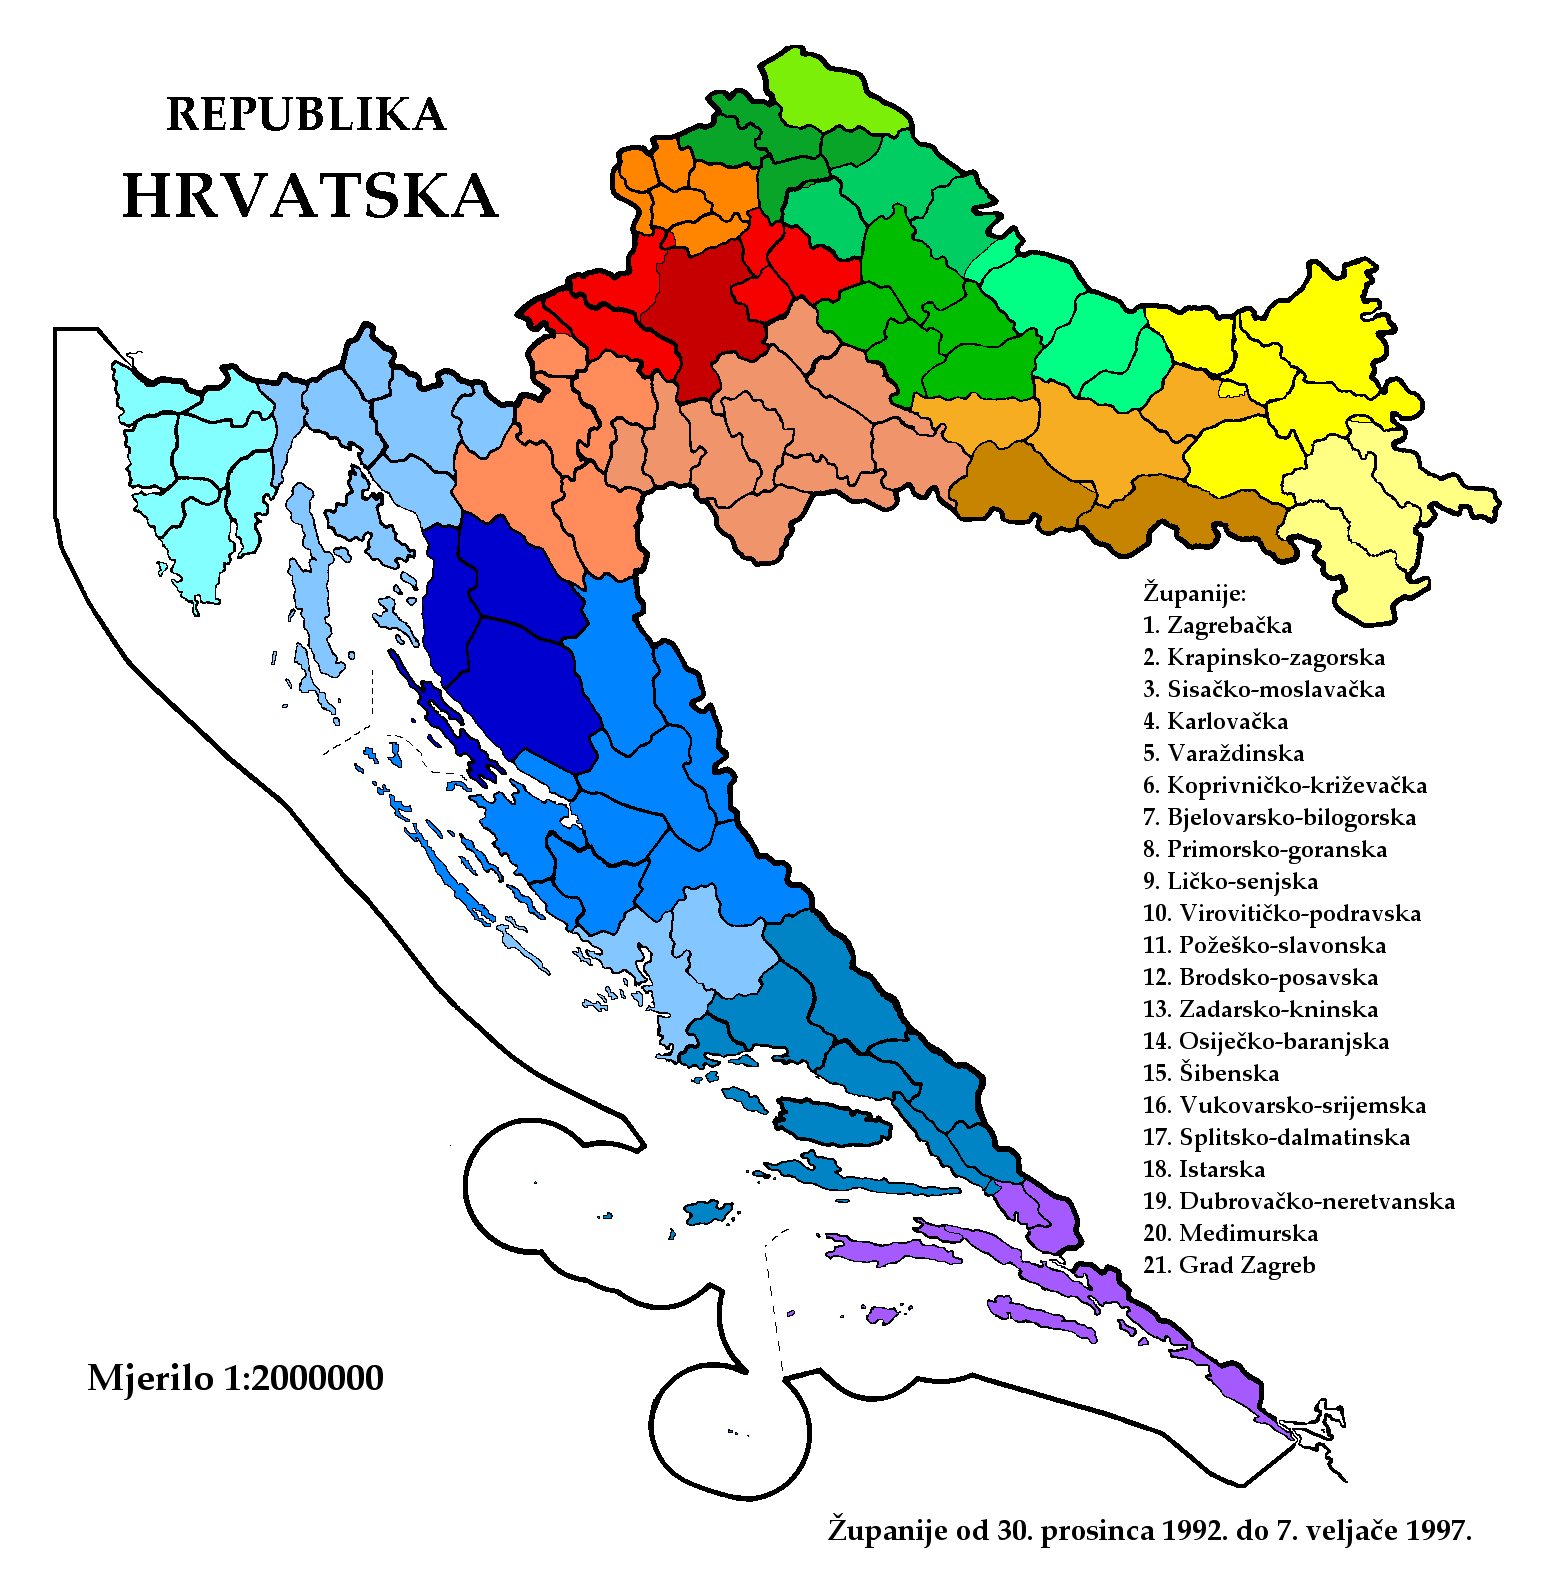 karta hrvatske google earth Where is Croatia? Republic of Croatia Maps • Mapsof.net karta hrvatske google earth